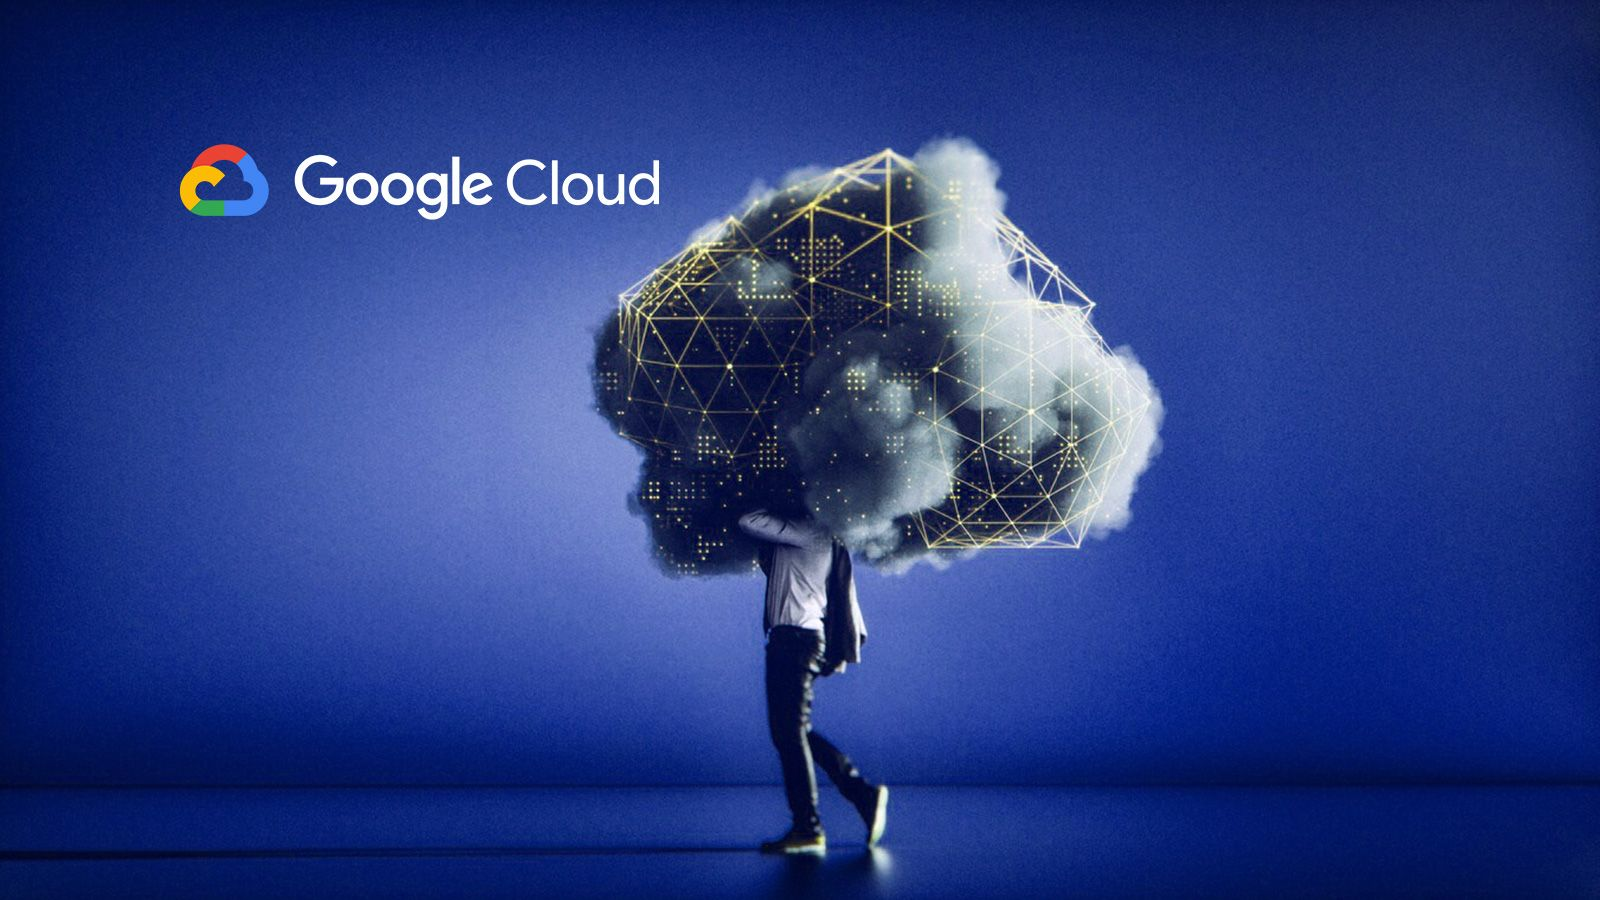 Vodafone-Chooses-Google-Cloud-as-Strategic-Cloud-Platform-for-Infrastructure_-Data-Analytics_-and-Machine-Learning.jpg (390 KB)